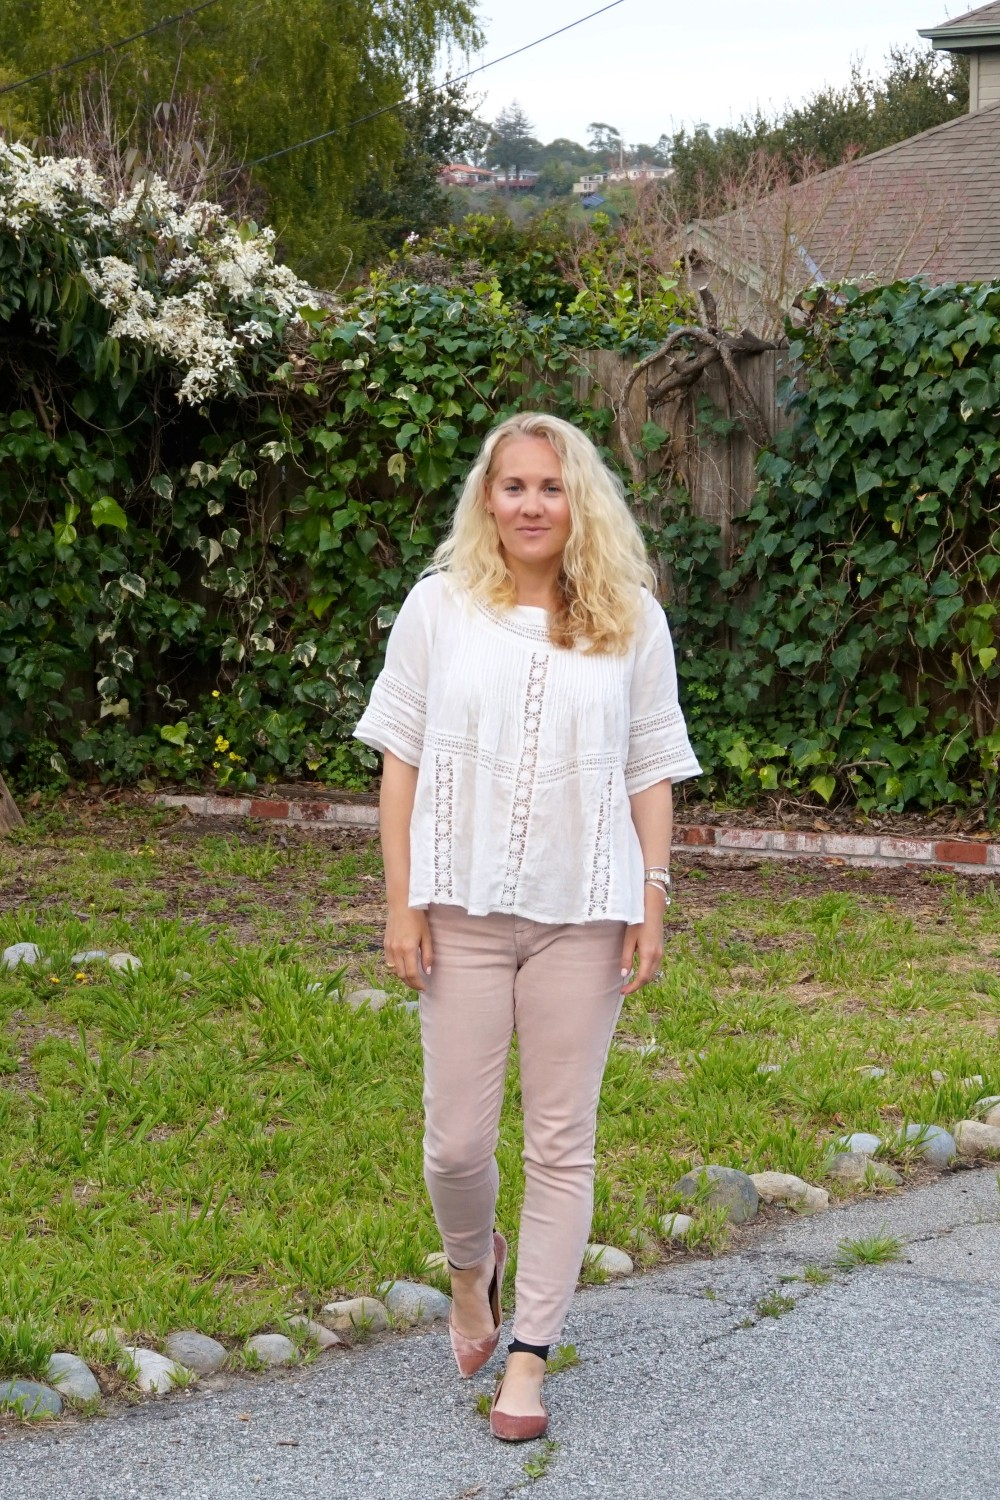 Two Ways to Wear Pale Pink Pants-Target Style-Mossimo Pants-Oufit Inspiration-Spring Style-Have Need Want